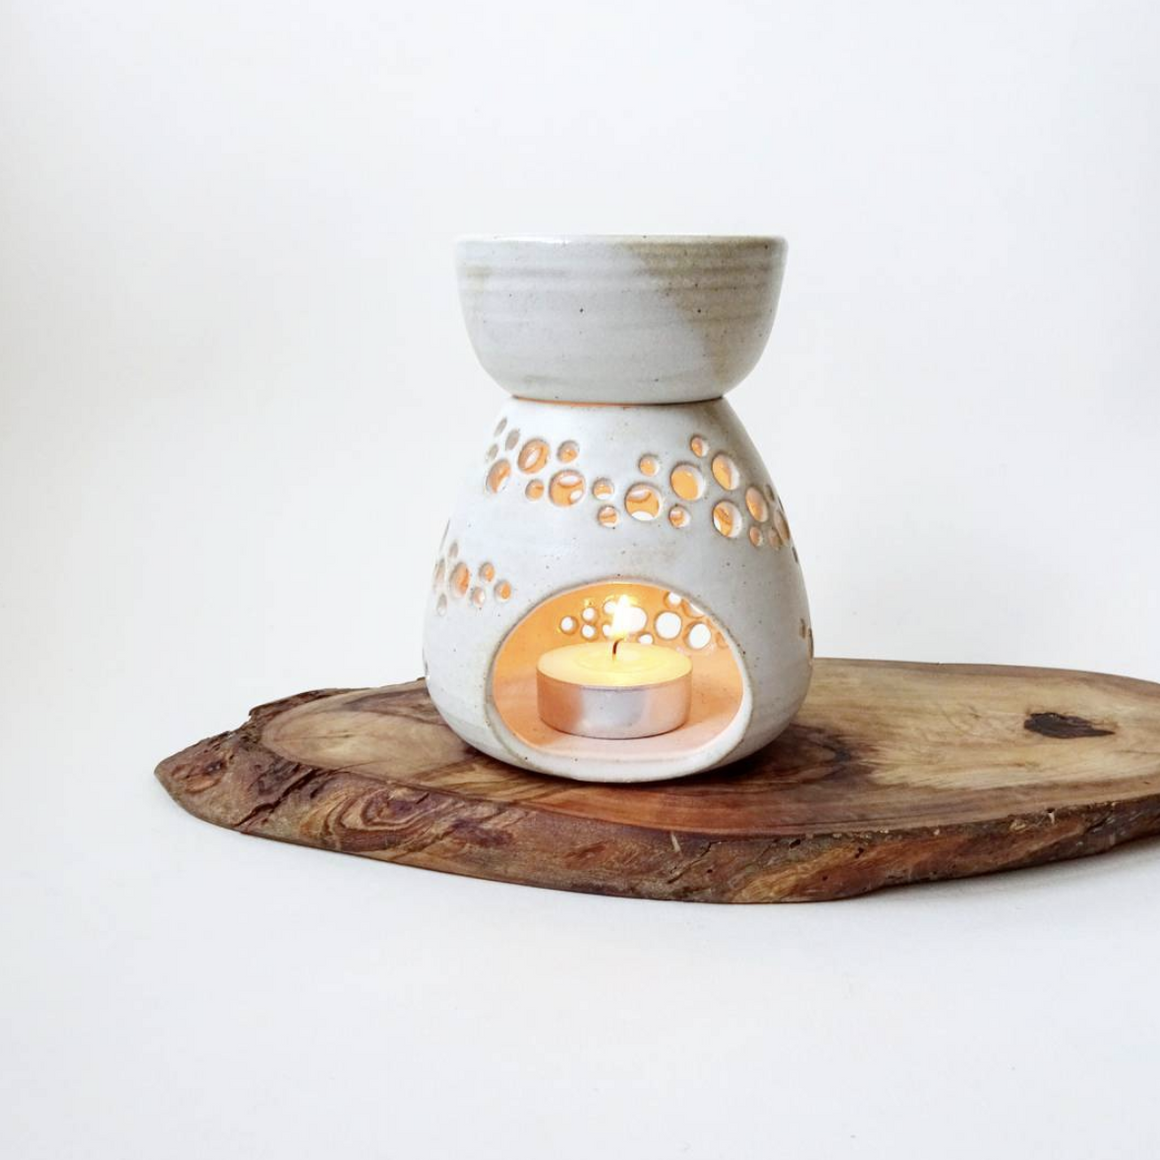 CERAMIC OIL BURNER - DETAILED